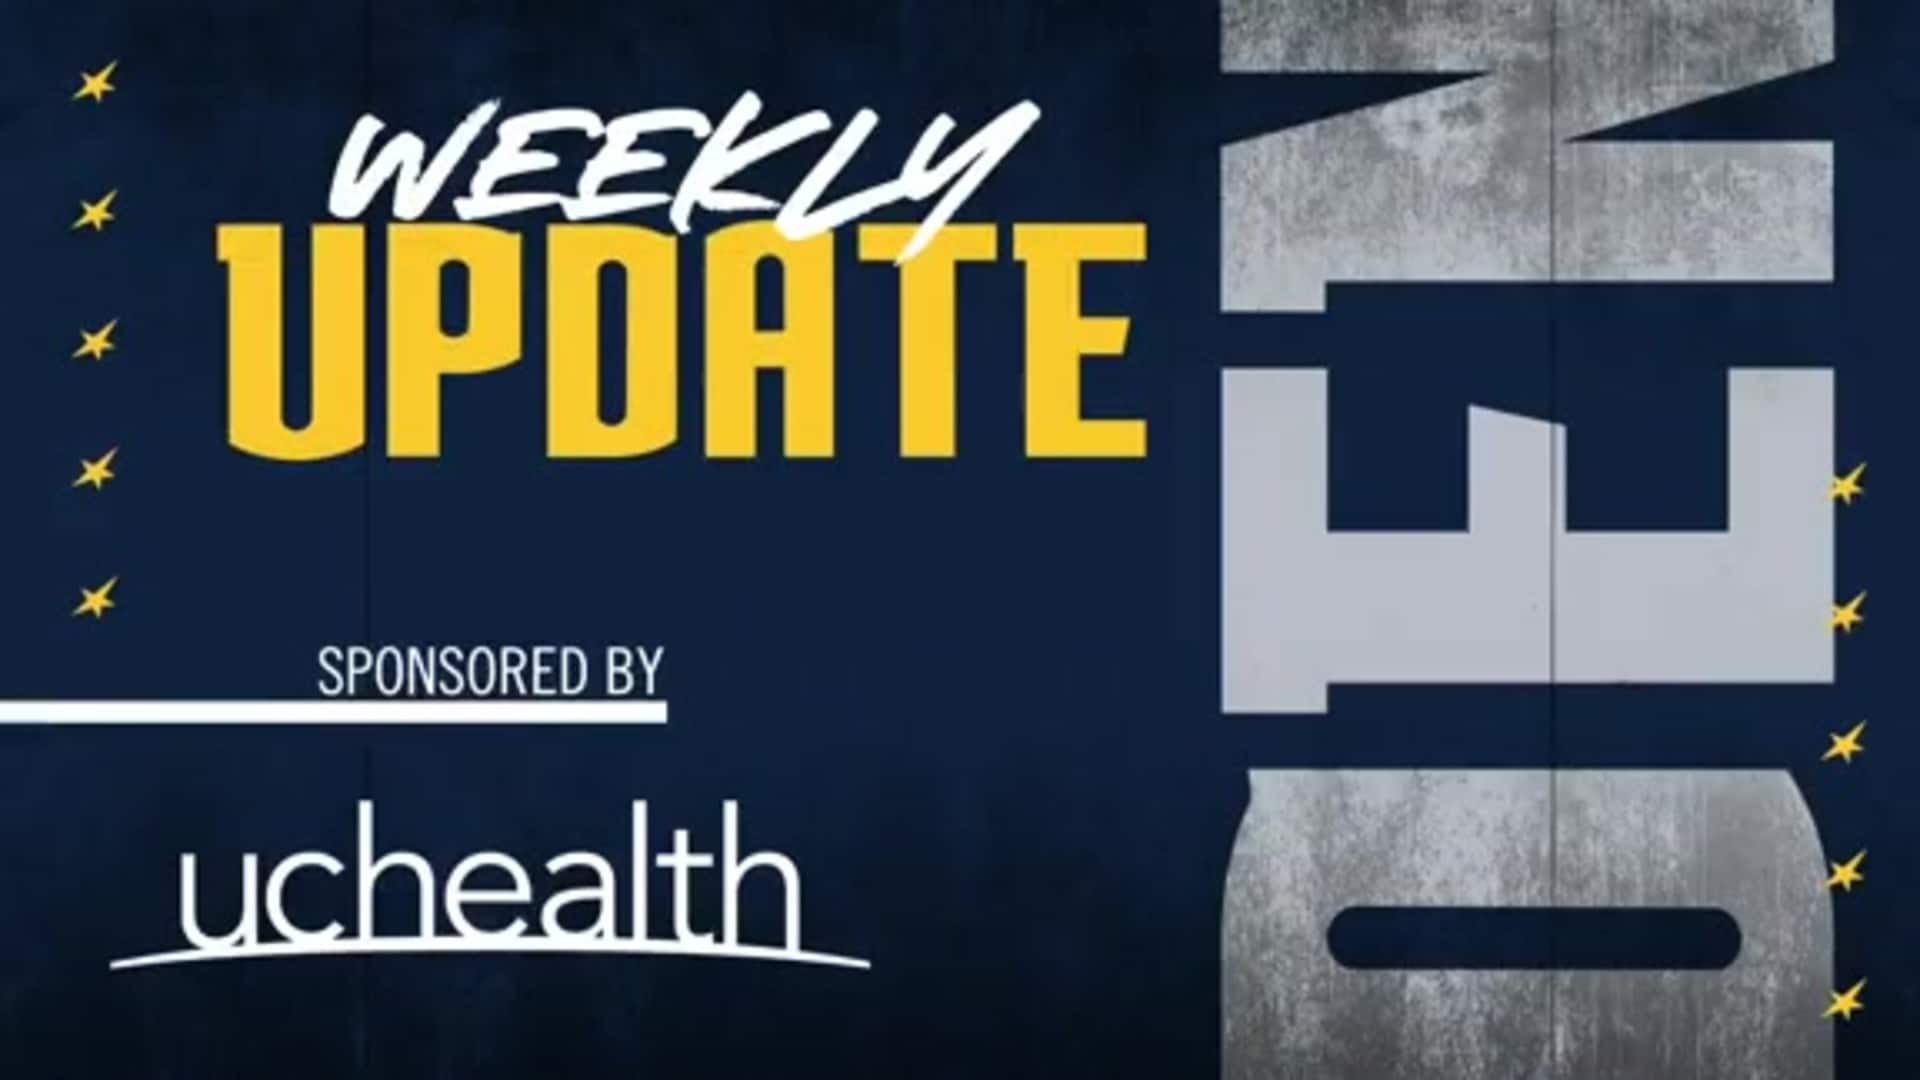 UCHealth Weekly Update | November 26